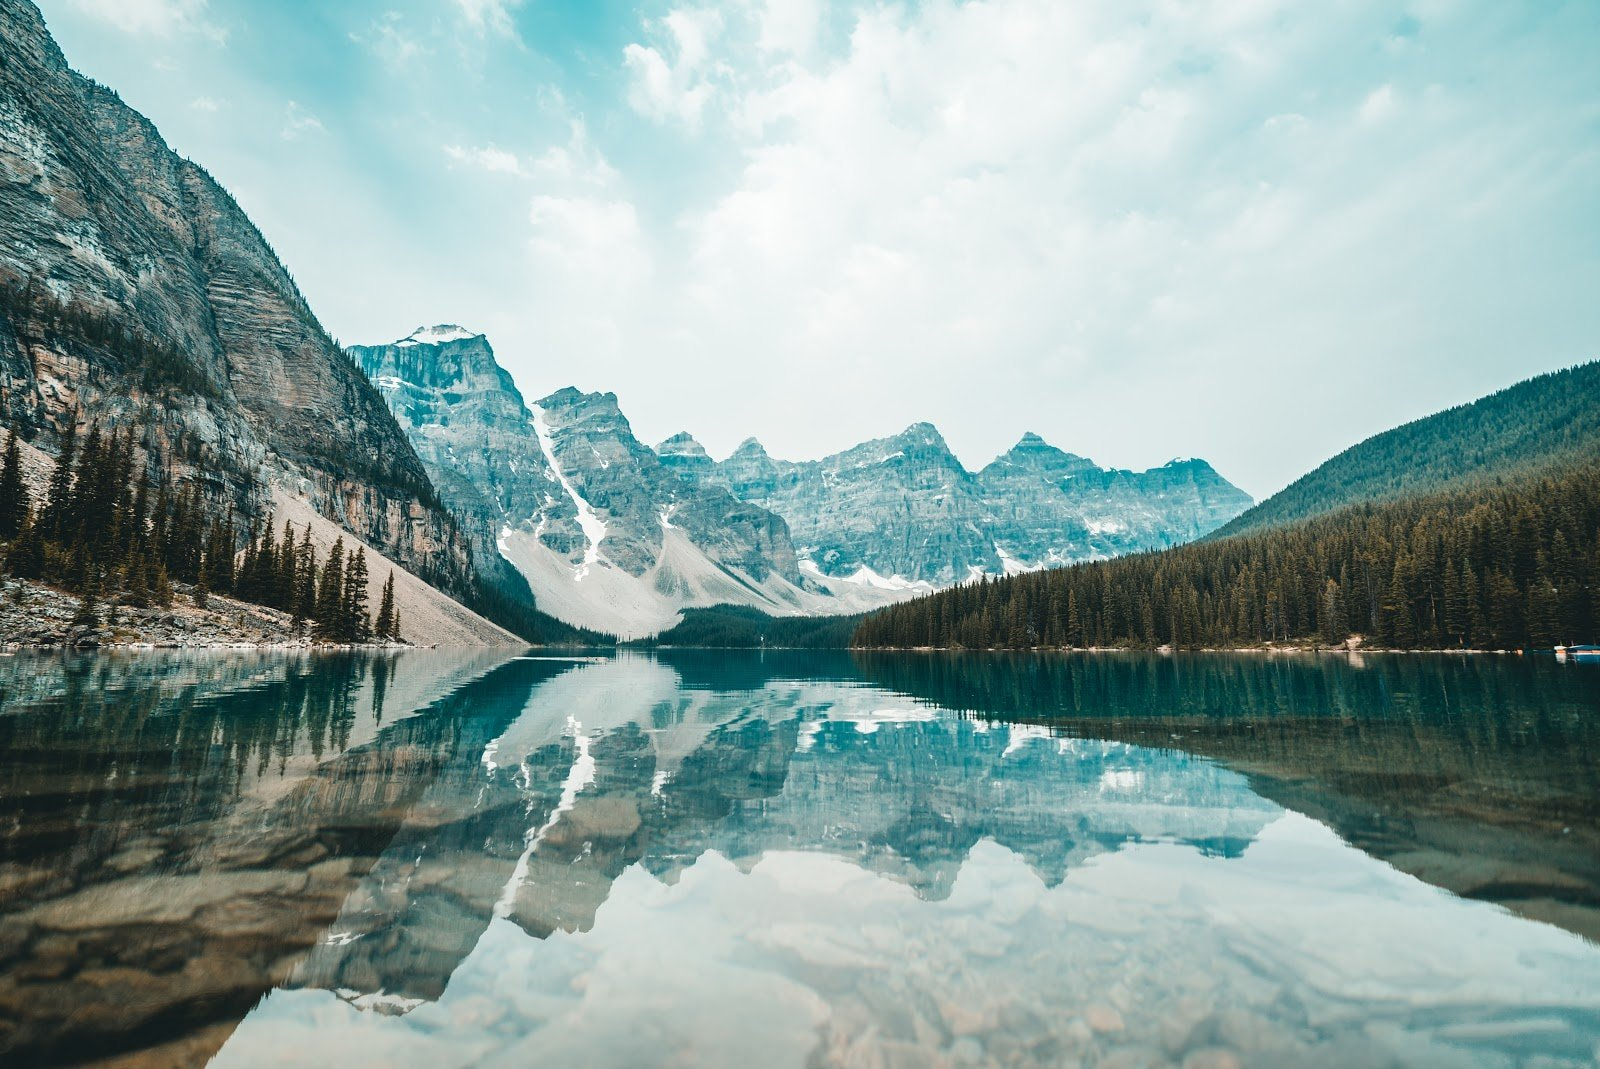 Cold mountains reflecting itself on the crystal waters photo by Redd Angelo